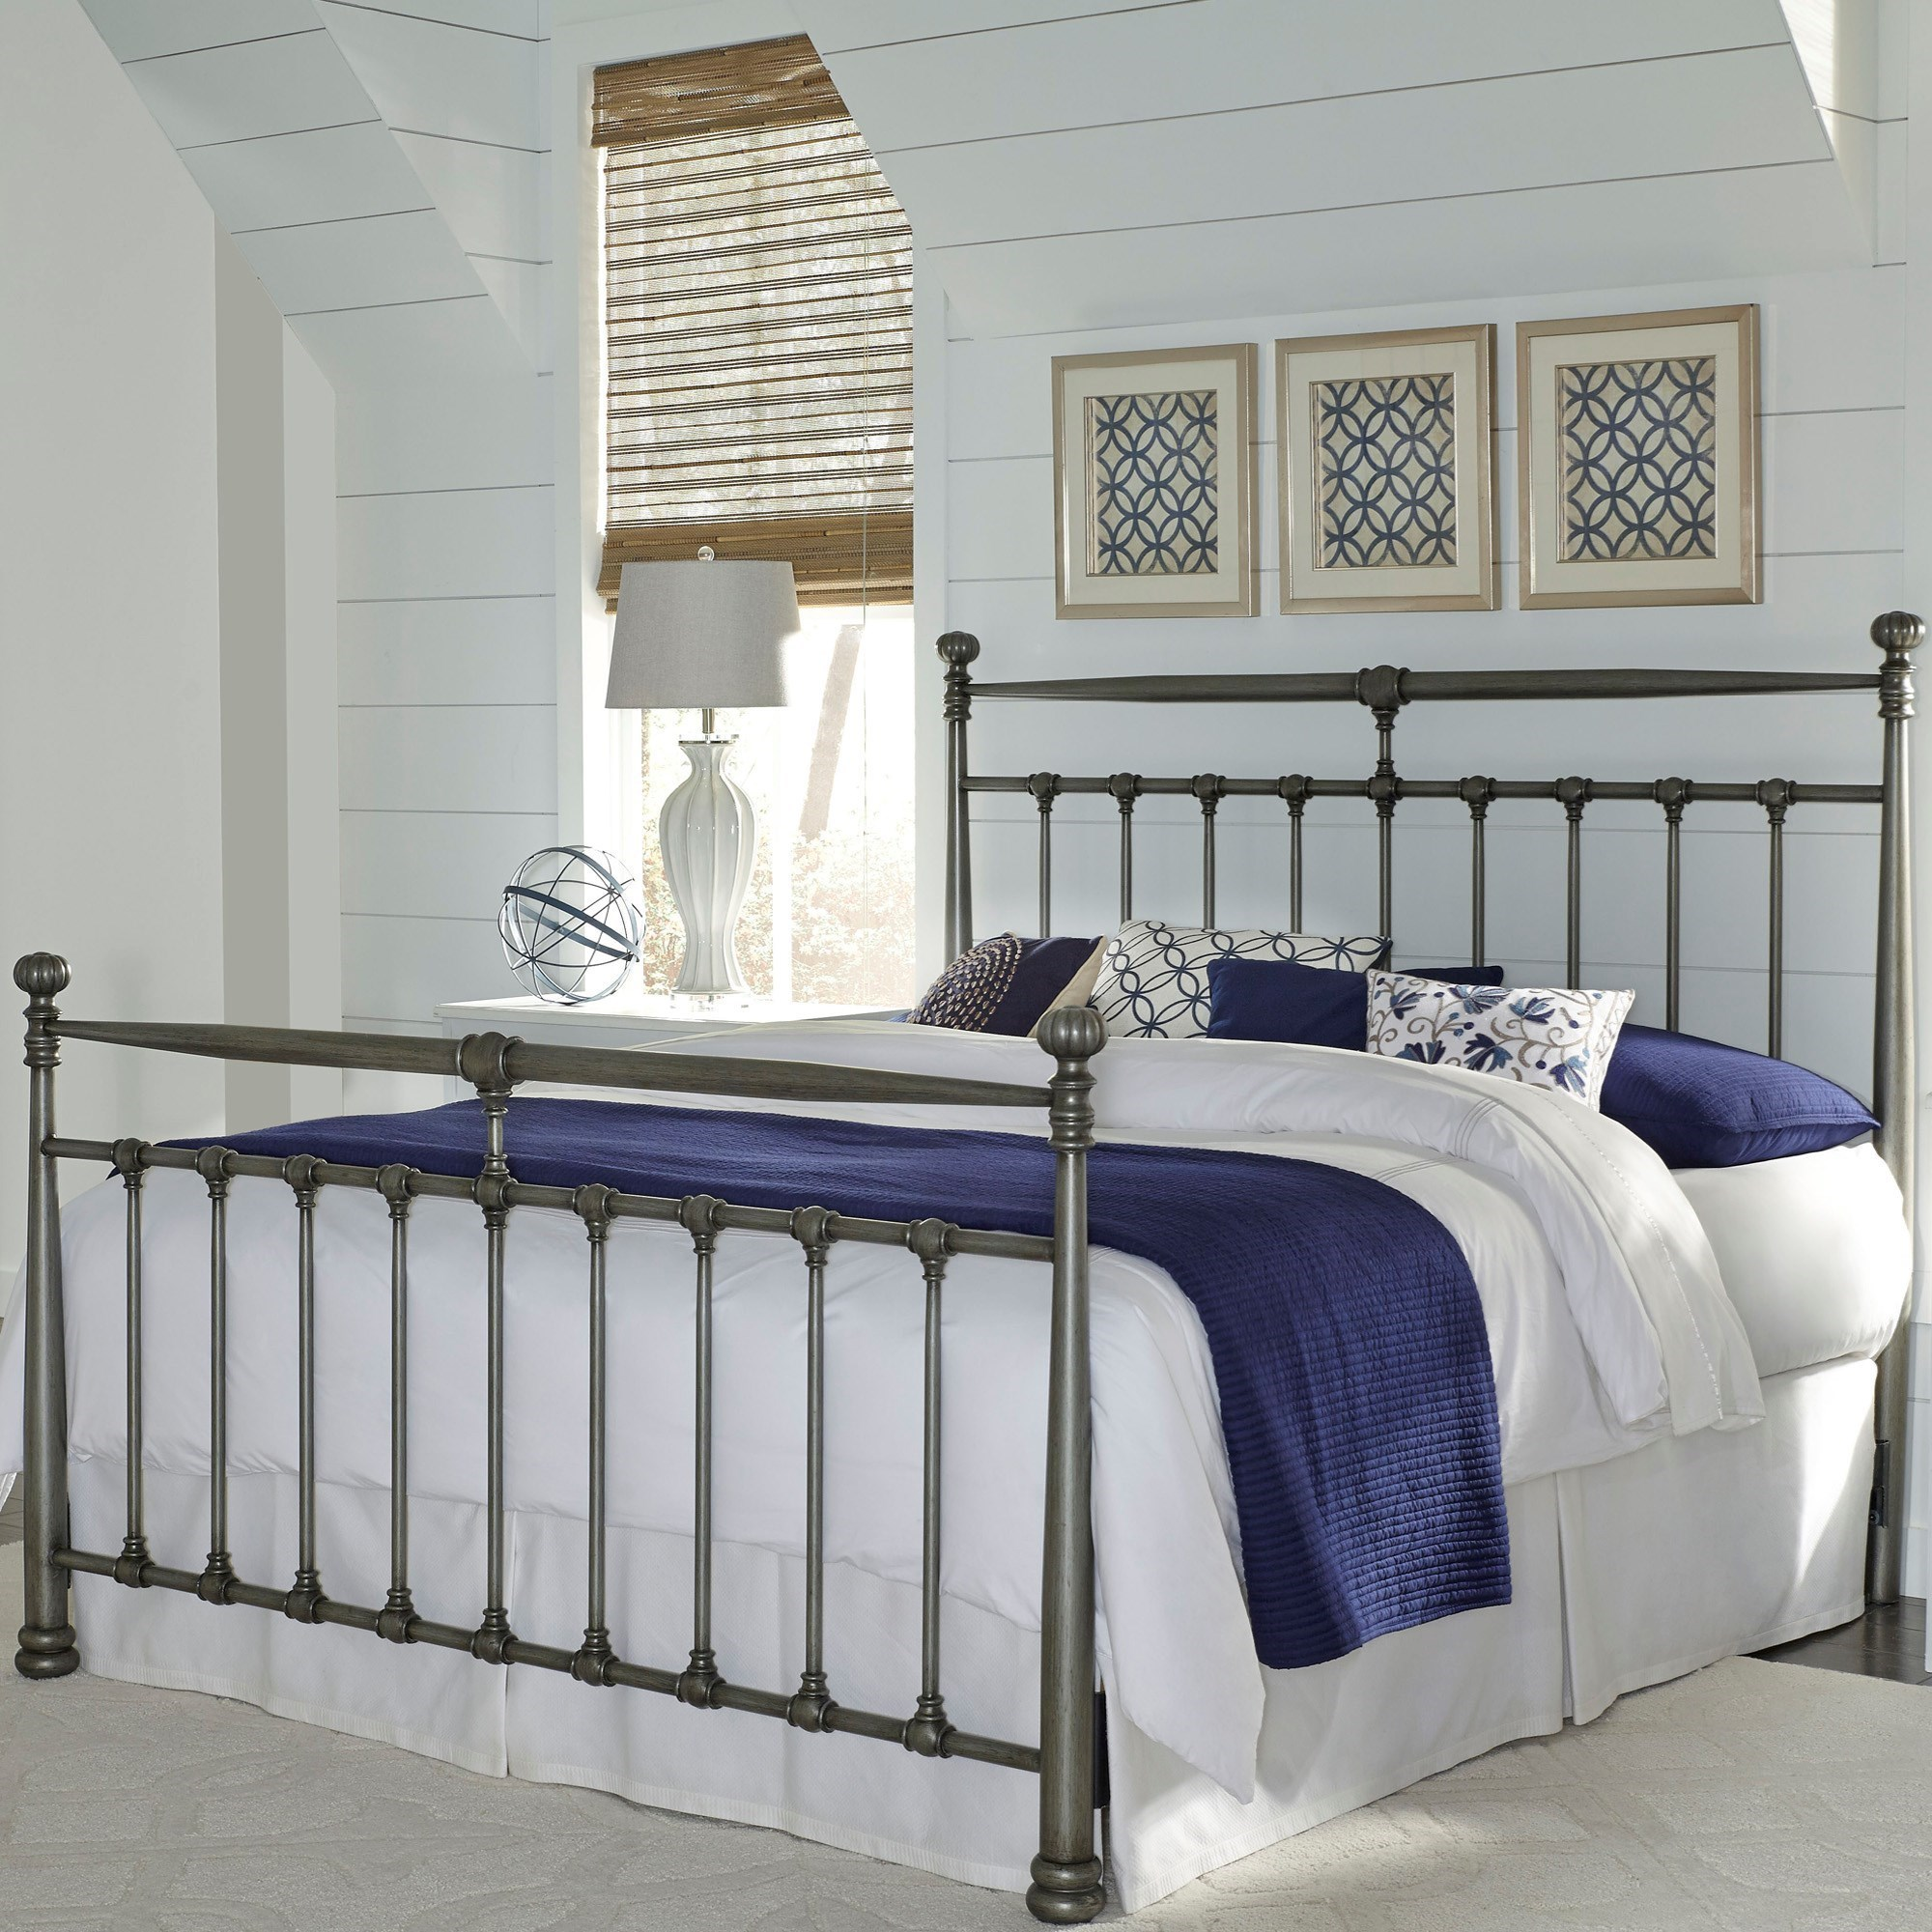 Fashion Bed Group KensingtonQueen Kensington Bed ...